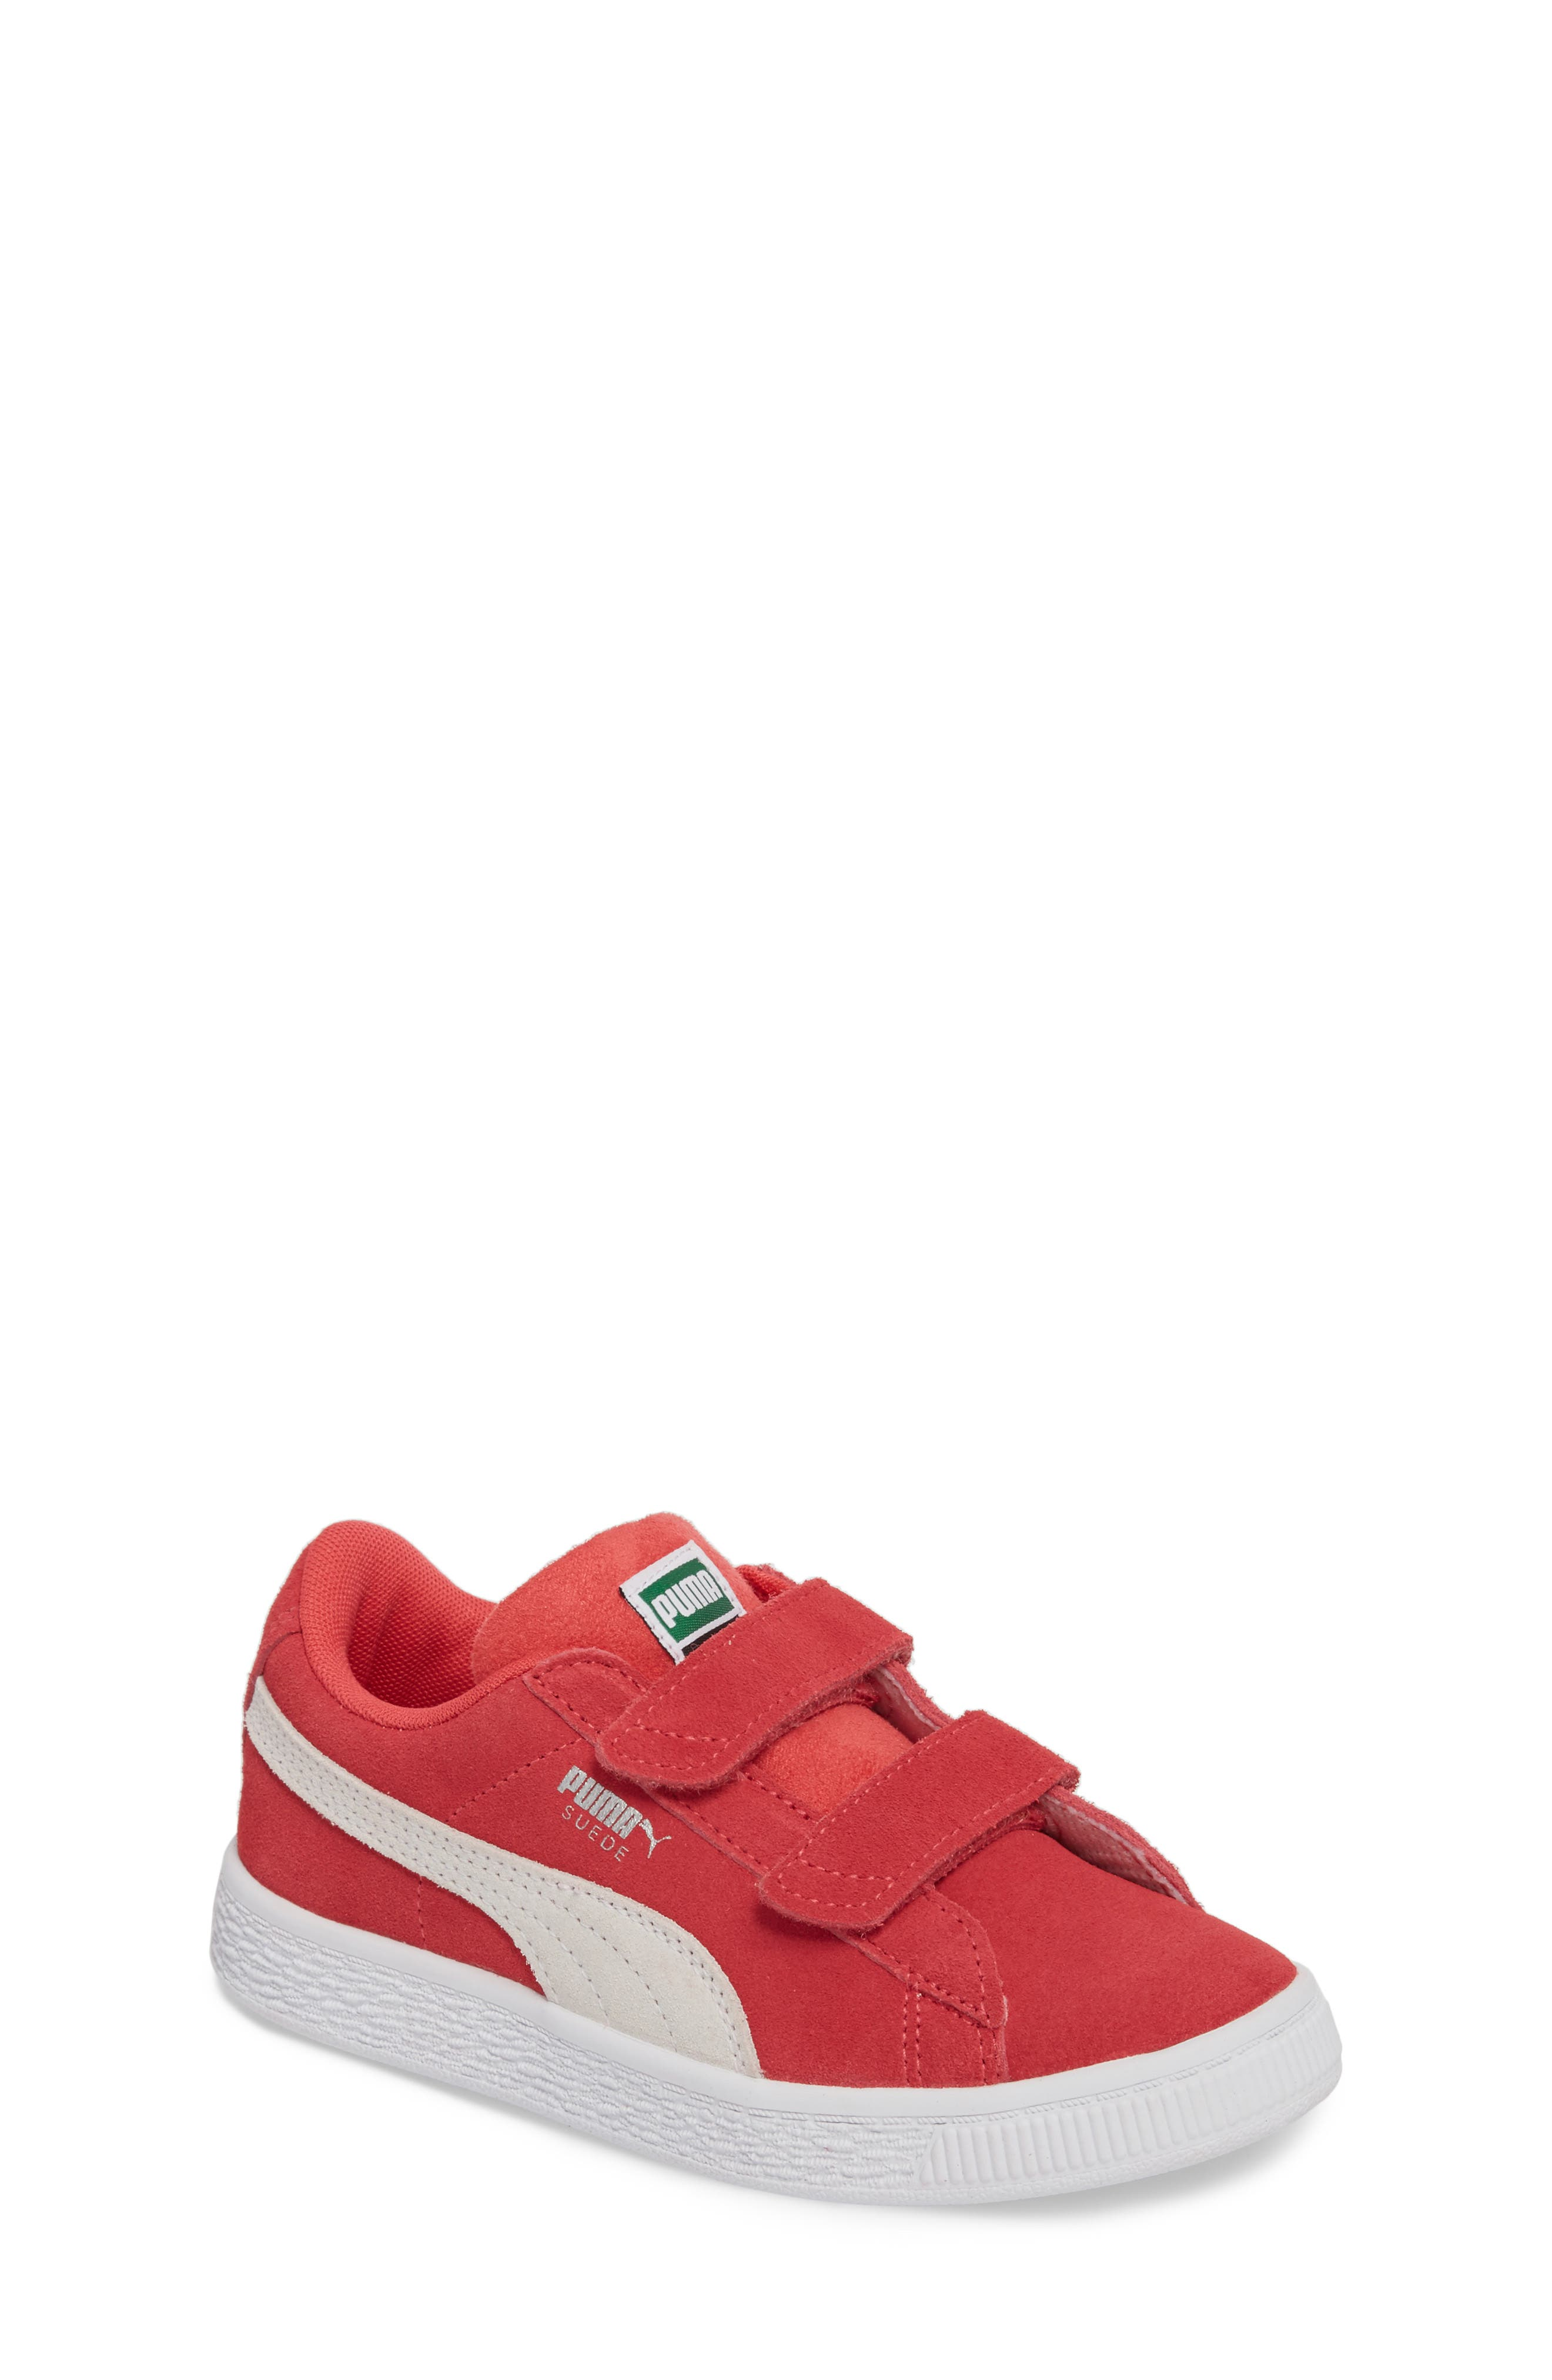 puma shoes red and white toddlers sandals girl for wedding